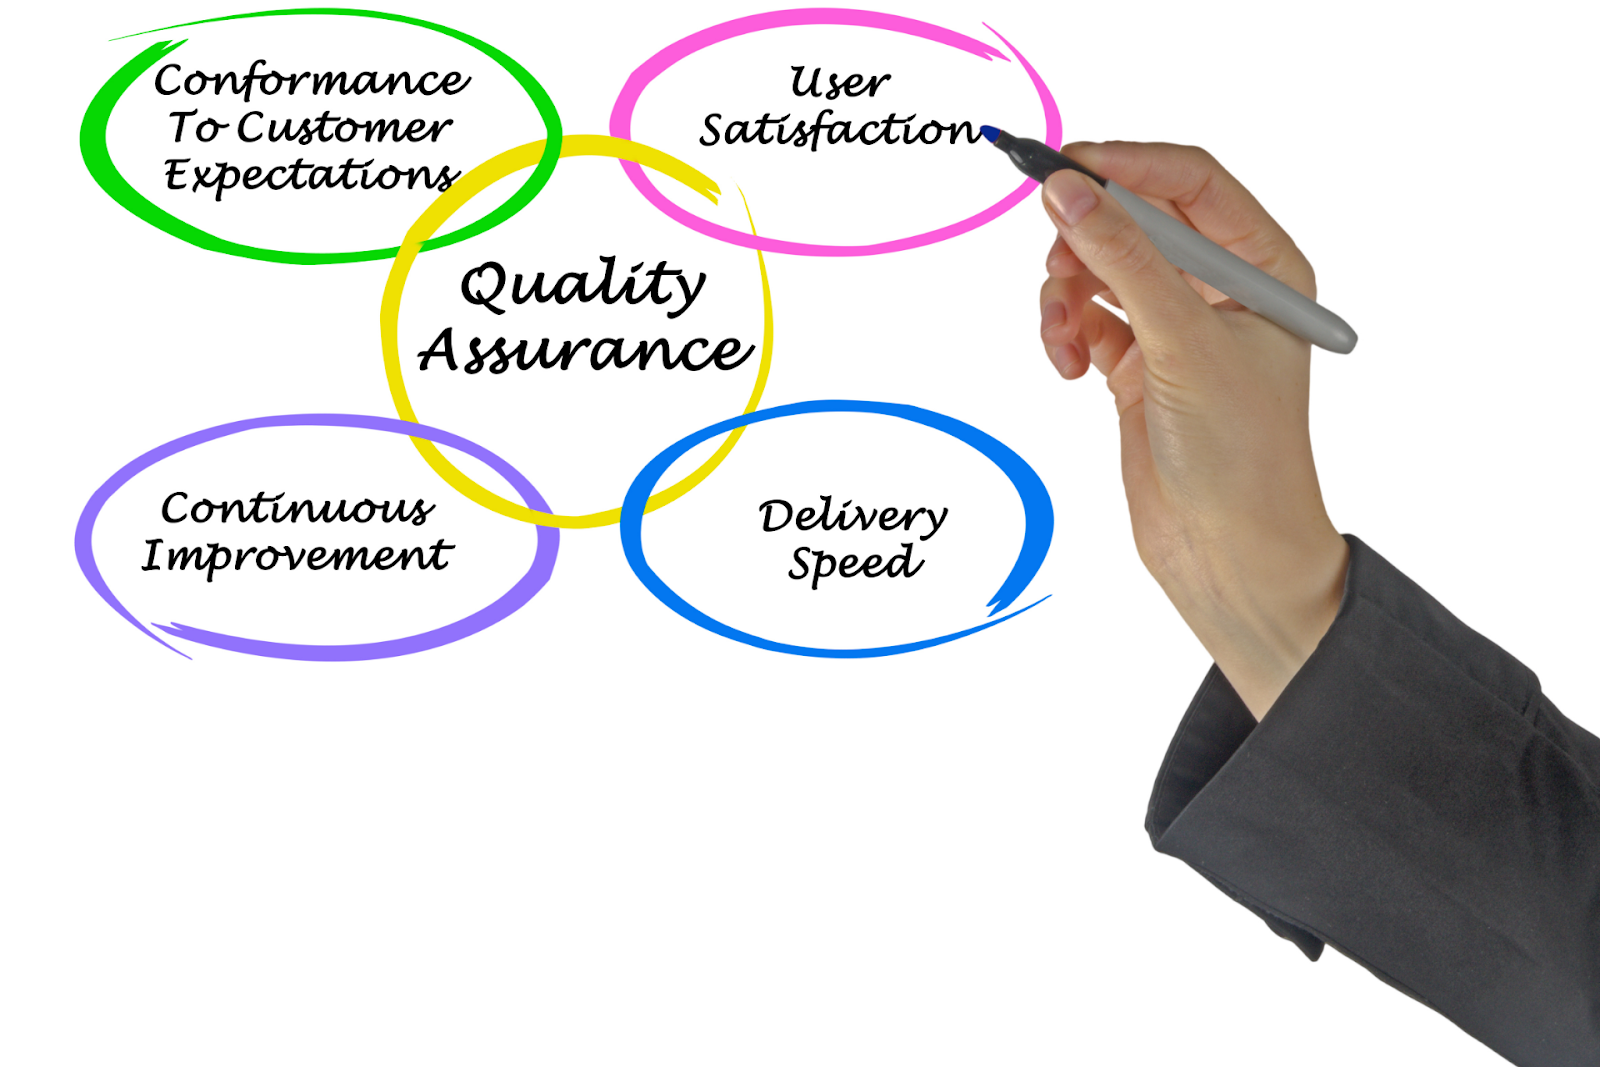 person mapping out quality assurance